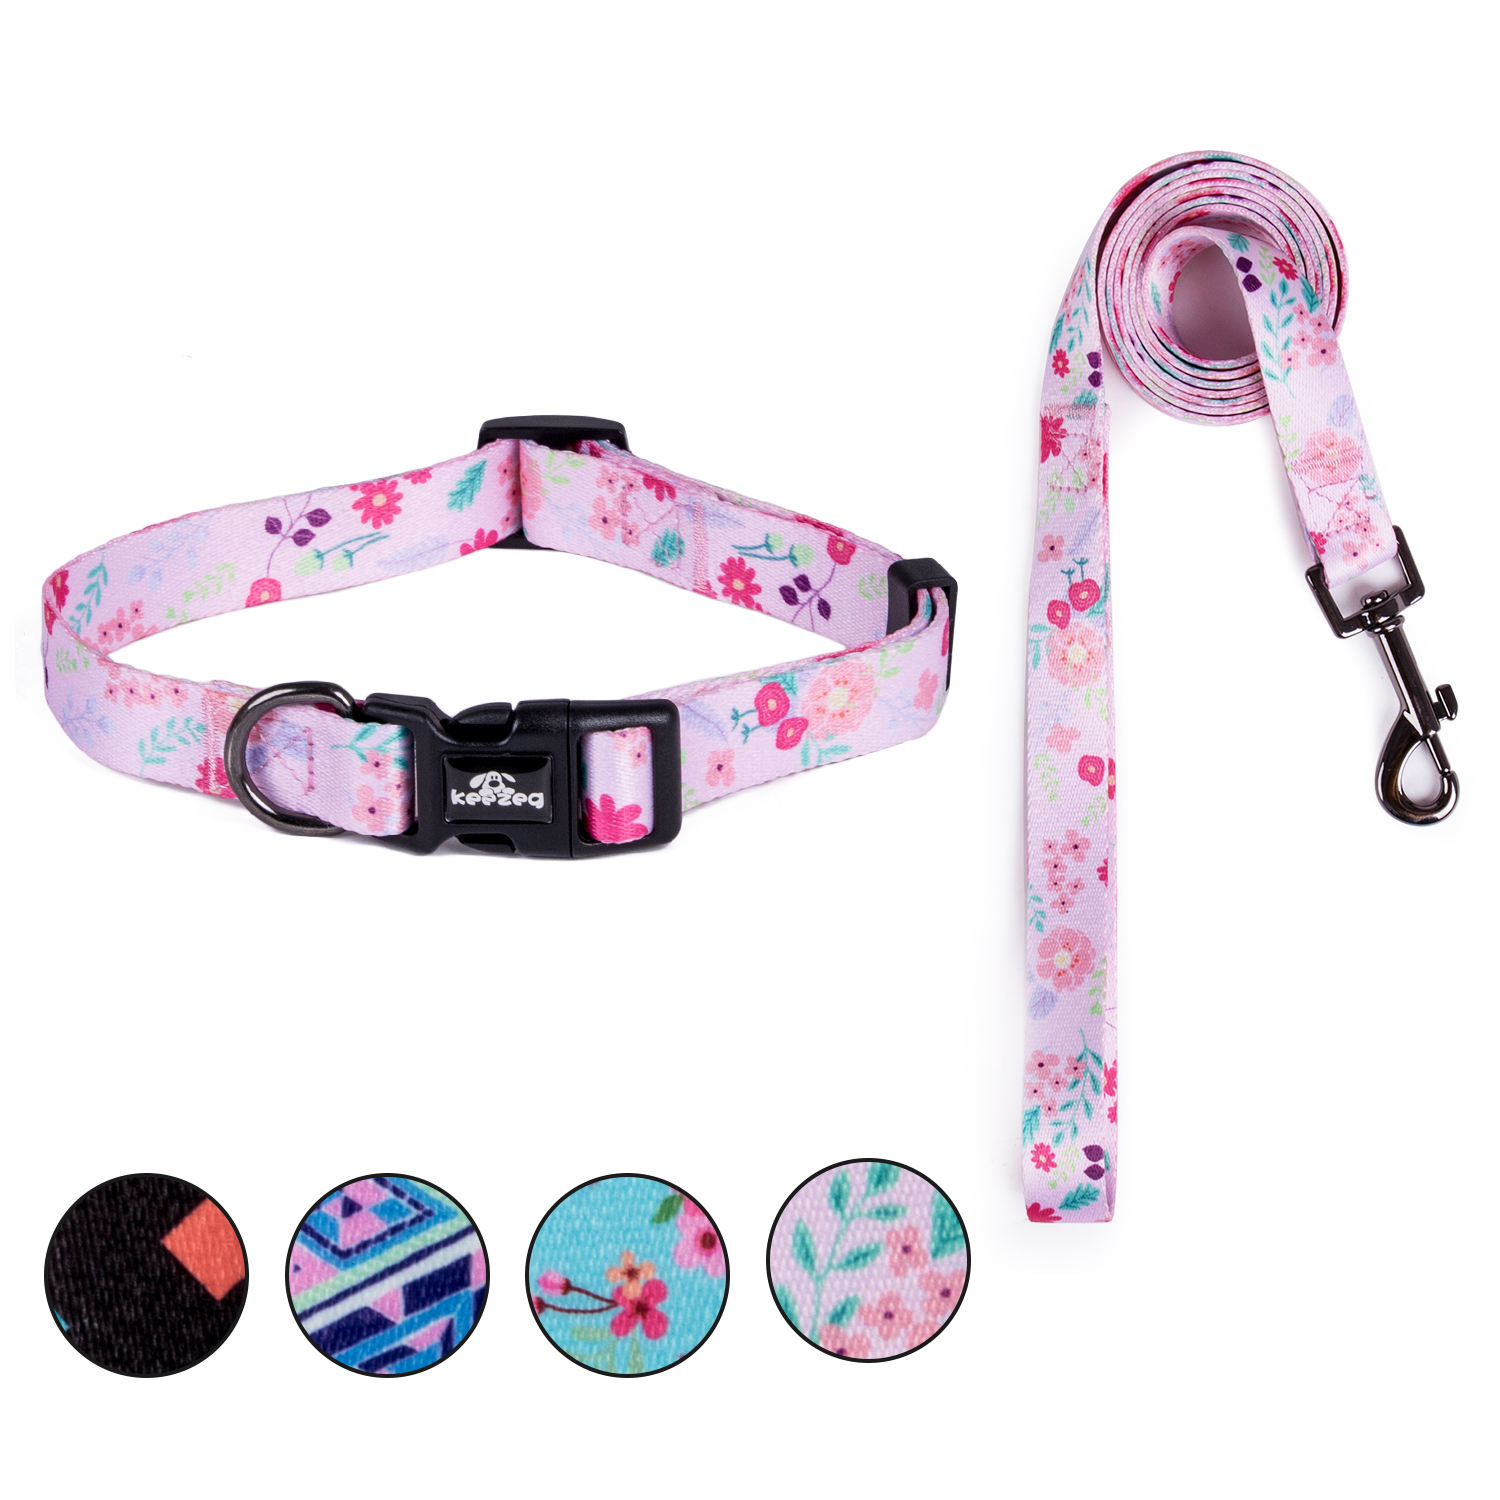 Original design Pink dog collar leash set fashion duty pet products cat dog collars with leash matching